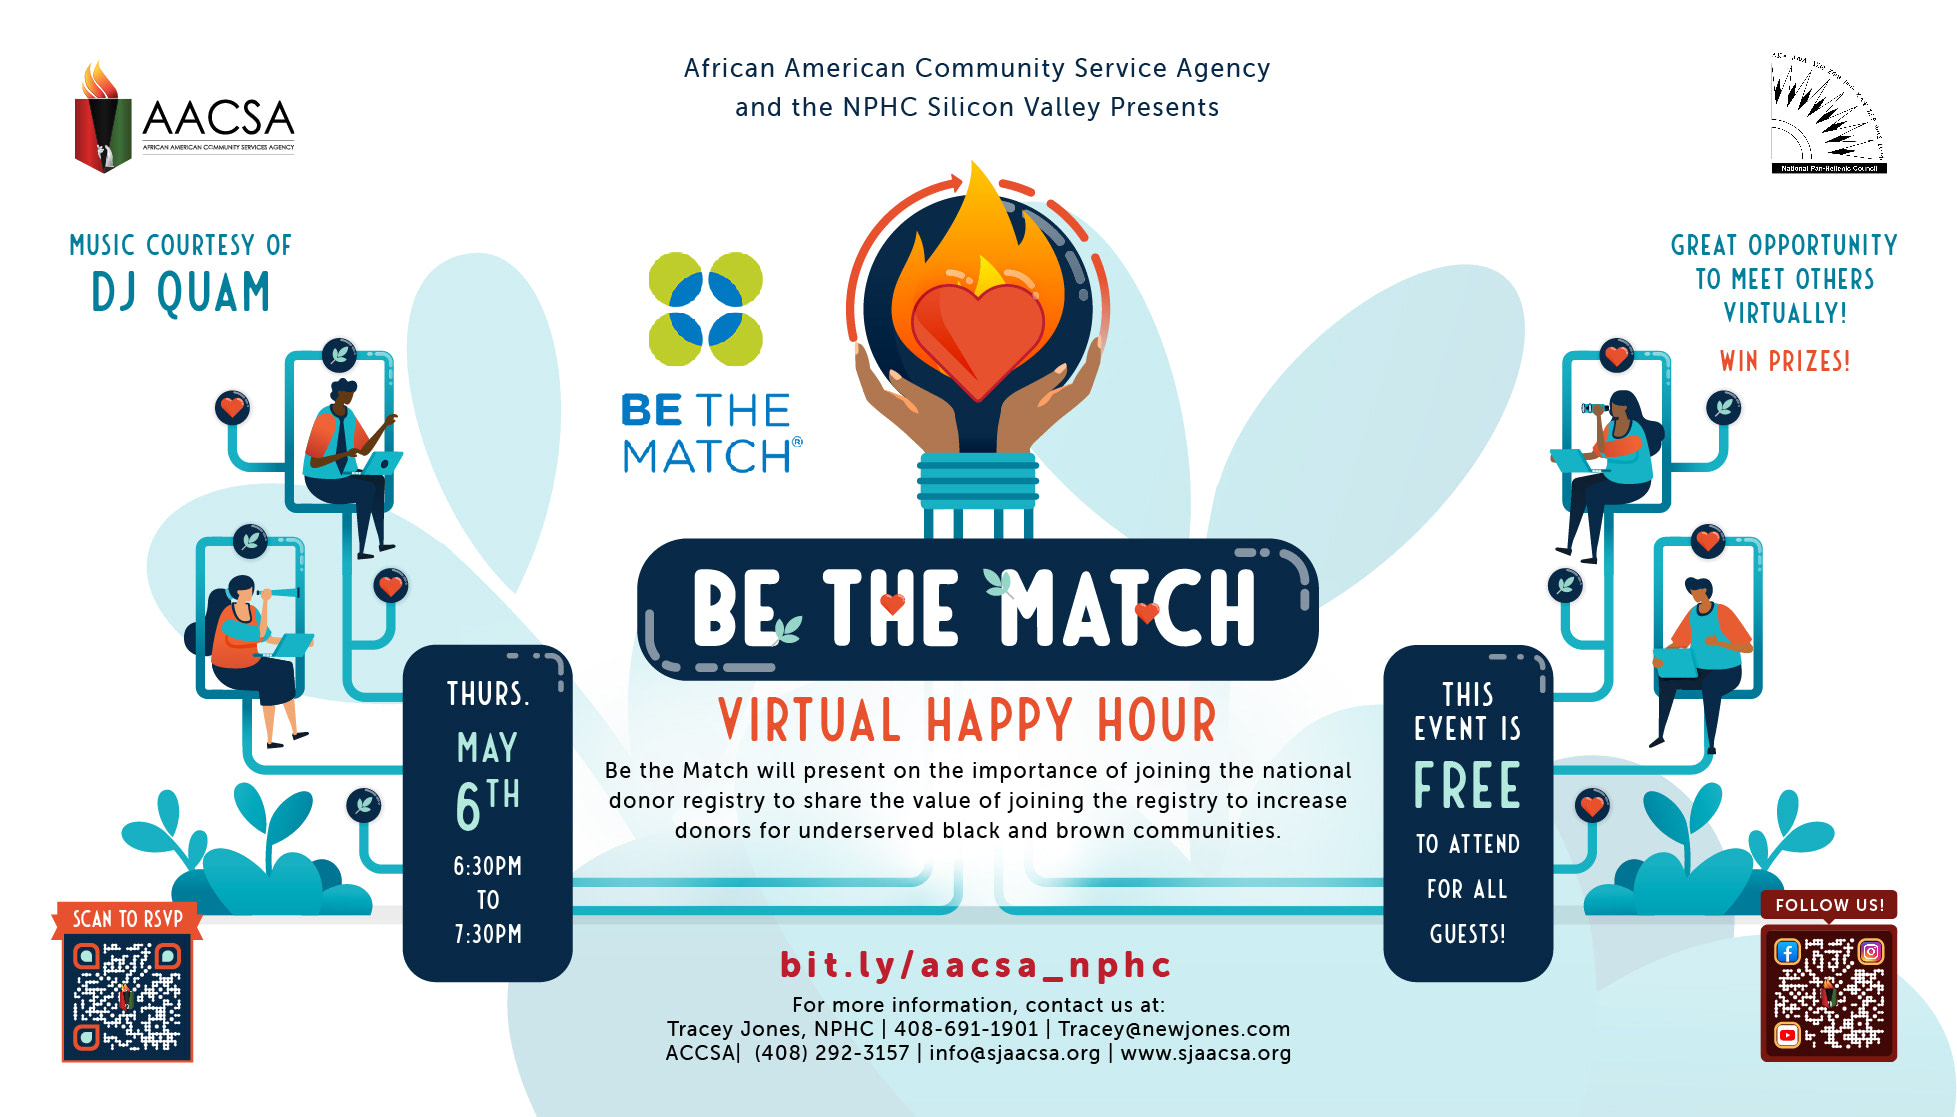 Banner for the AACSA Event: Be The Match Virtual Happy Hour Even. Hosted by AACSA & the National Pan Hellenic Council of Silicon Valley. Event Date: Thursday May 6th, 6:30pm to 7:30pm. Be The Match will present on the importance of joining the national donor registry to share the value of joining the registry to increase donors for underserved black and brown communities.  Free tp attend for all guests. To register, visit bit.ly/aacsa_nphc